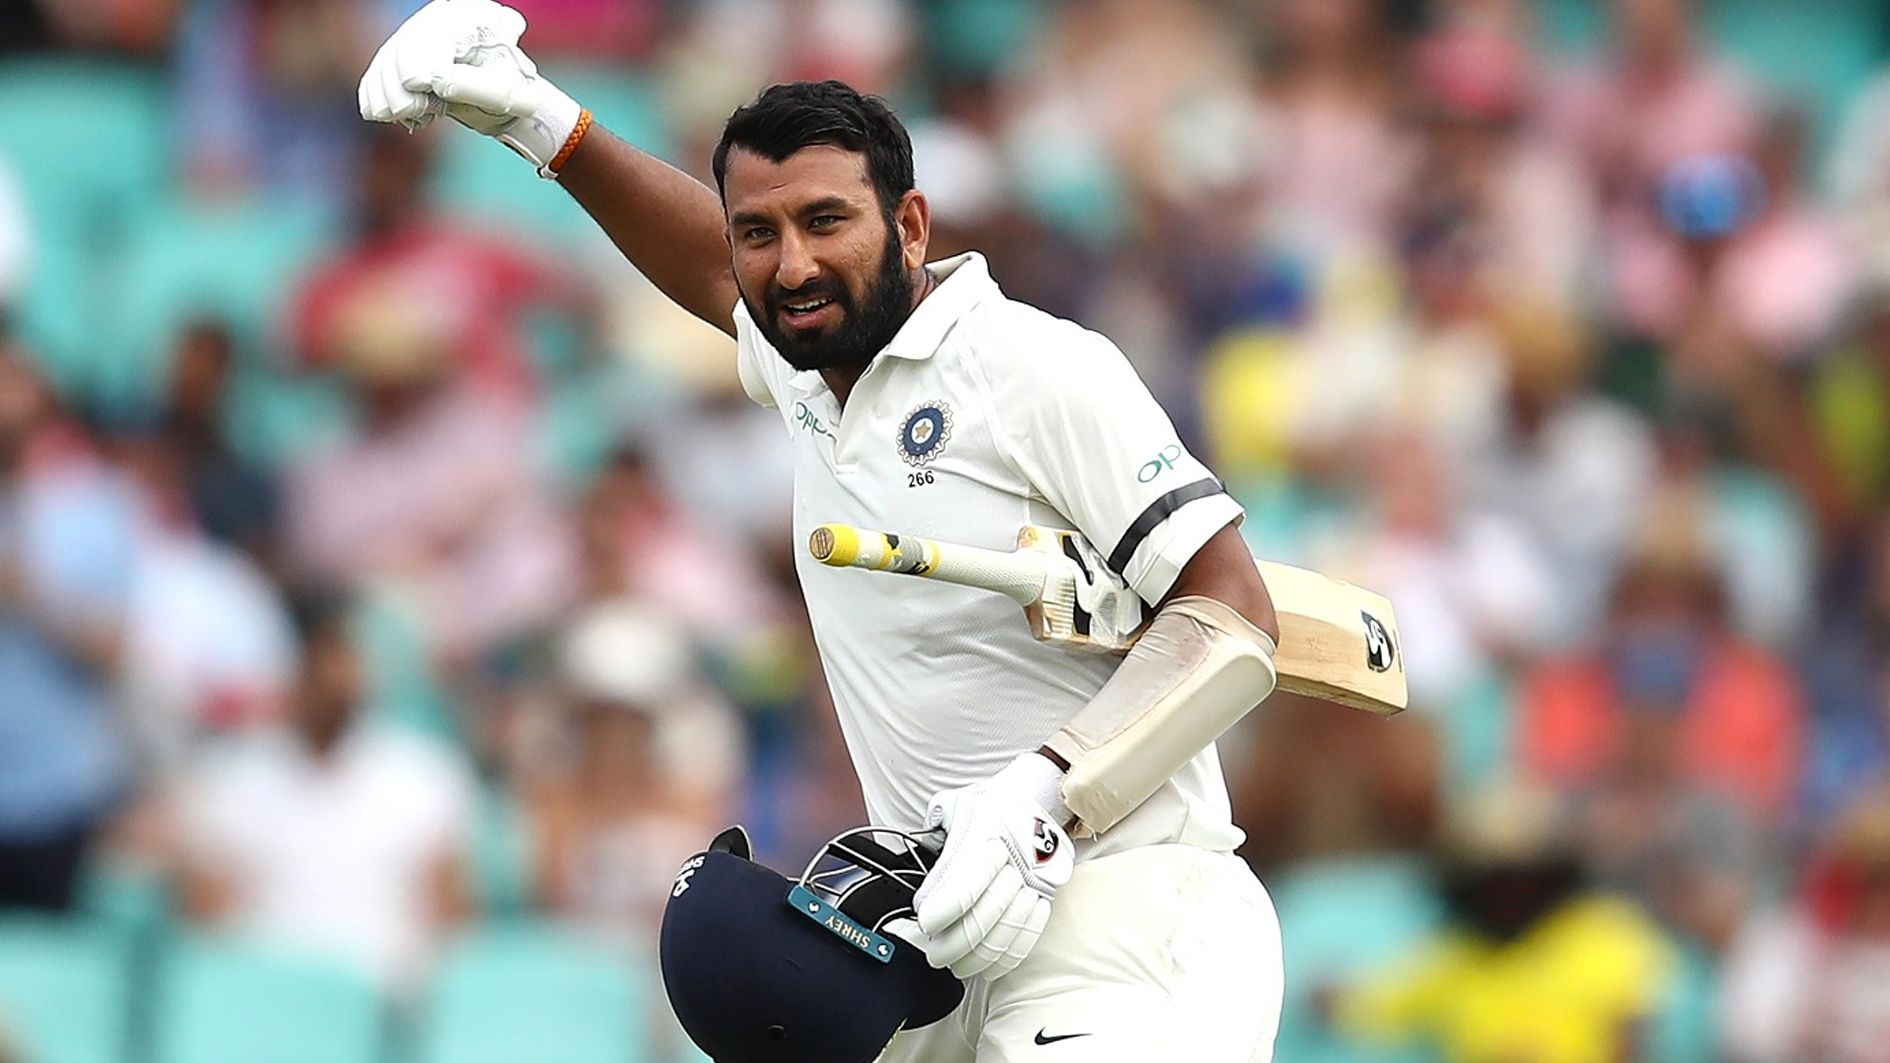 Pujara makes the case for defence